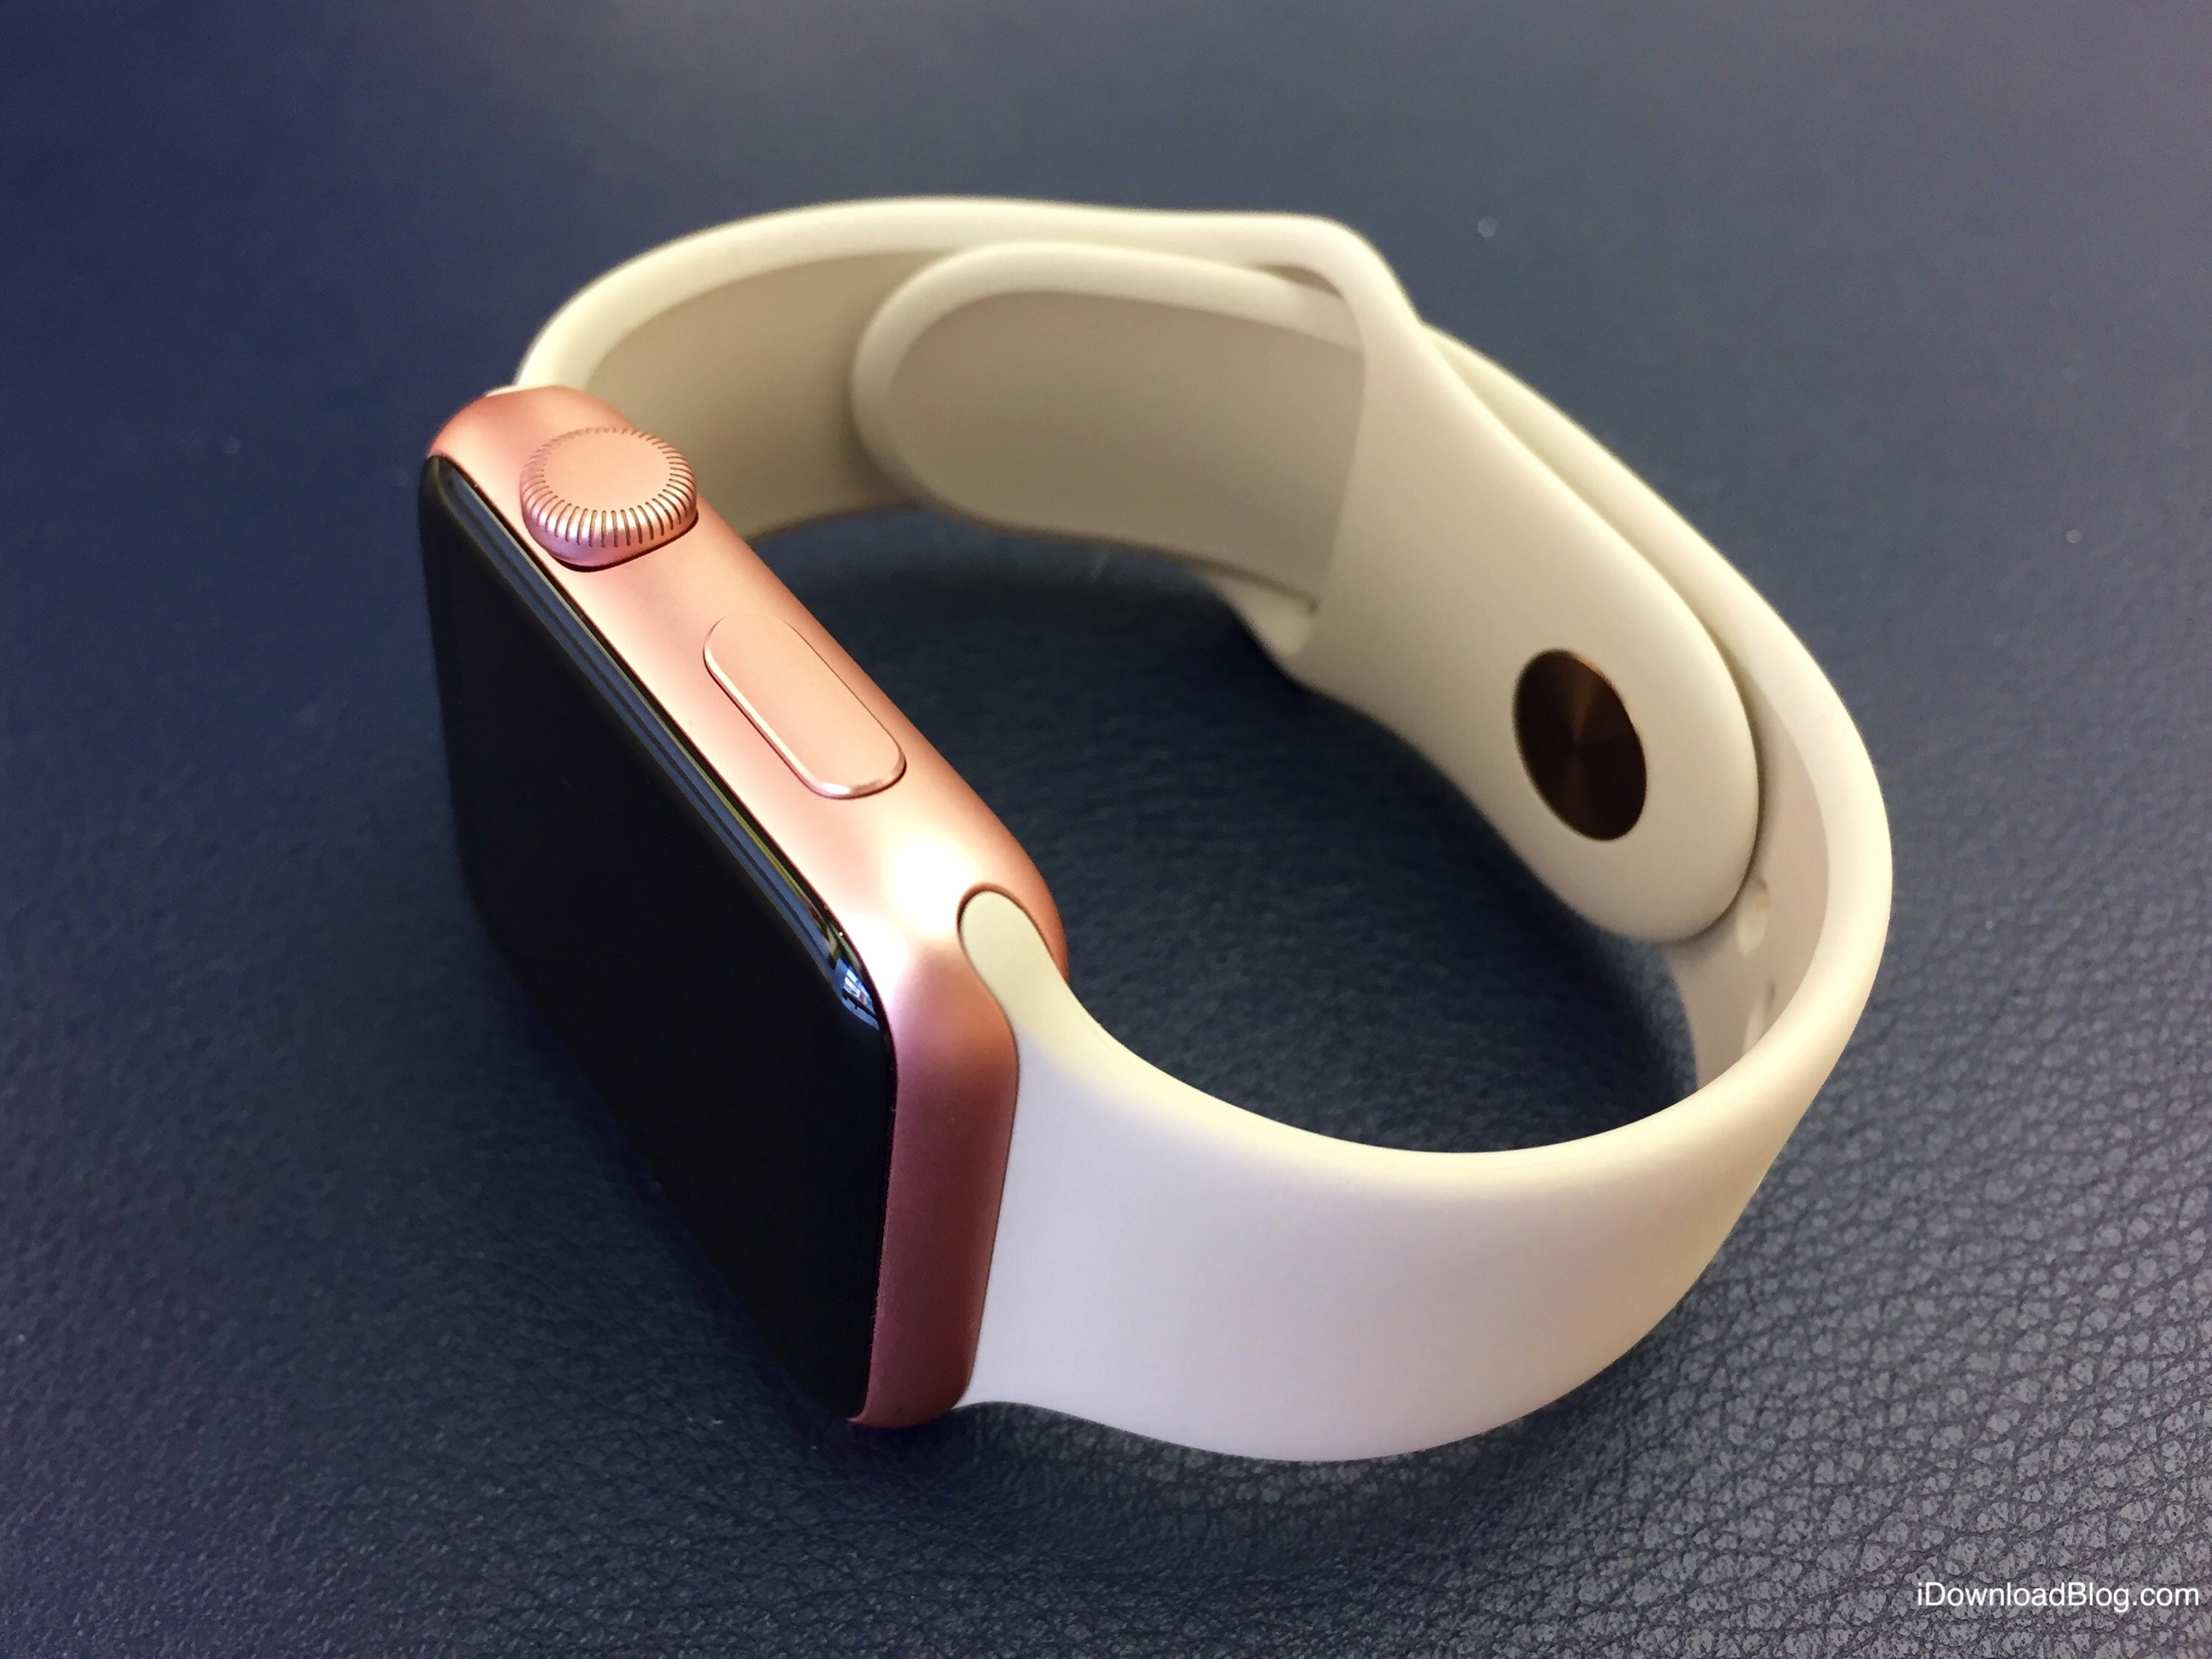 Rose Gold Aluminum Apple Watch Hands on 8